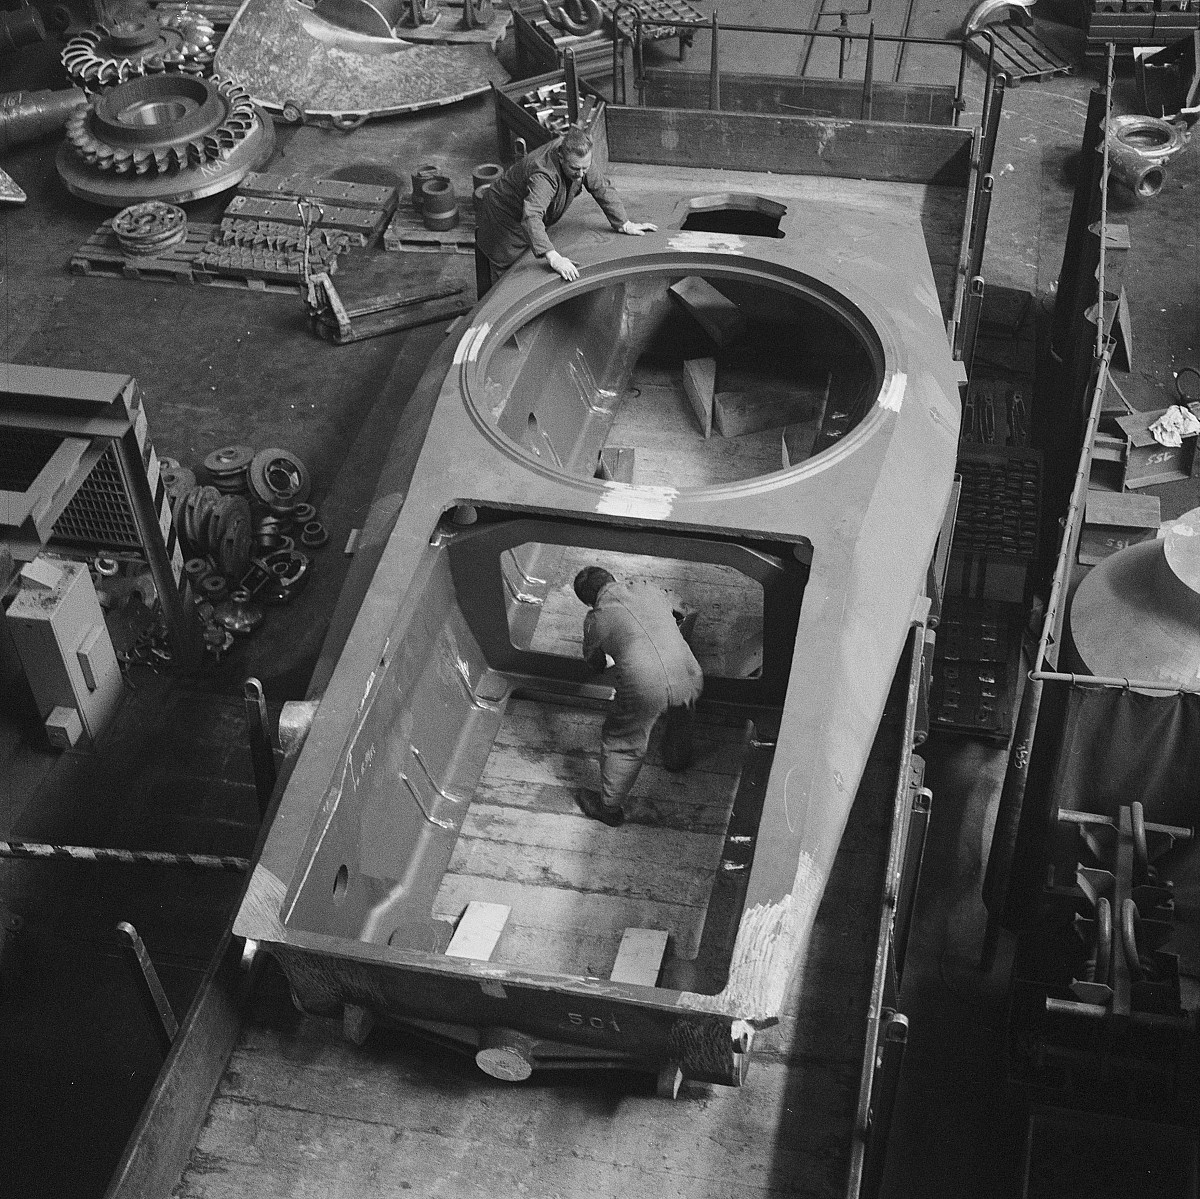 GFA 17/690642.3: Loading of a armoured tank in the steel foundry